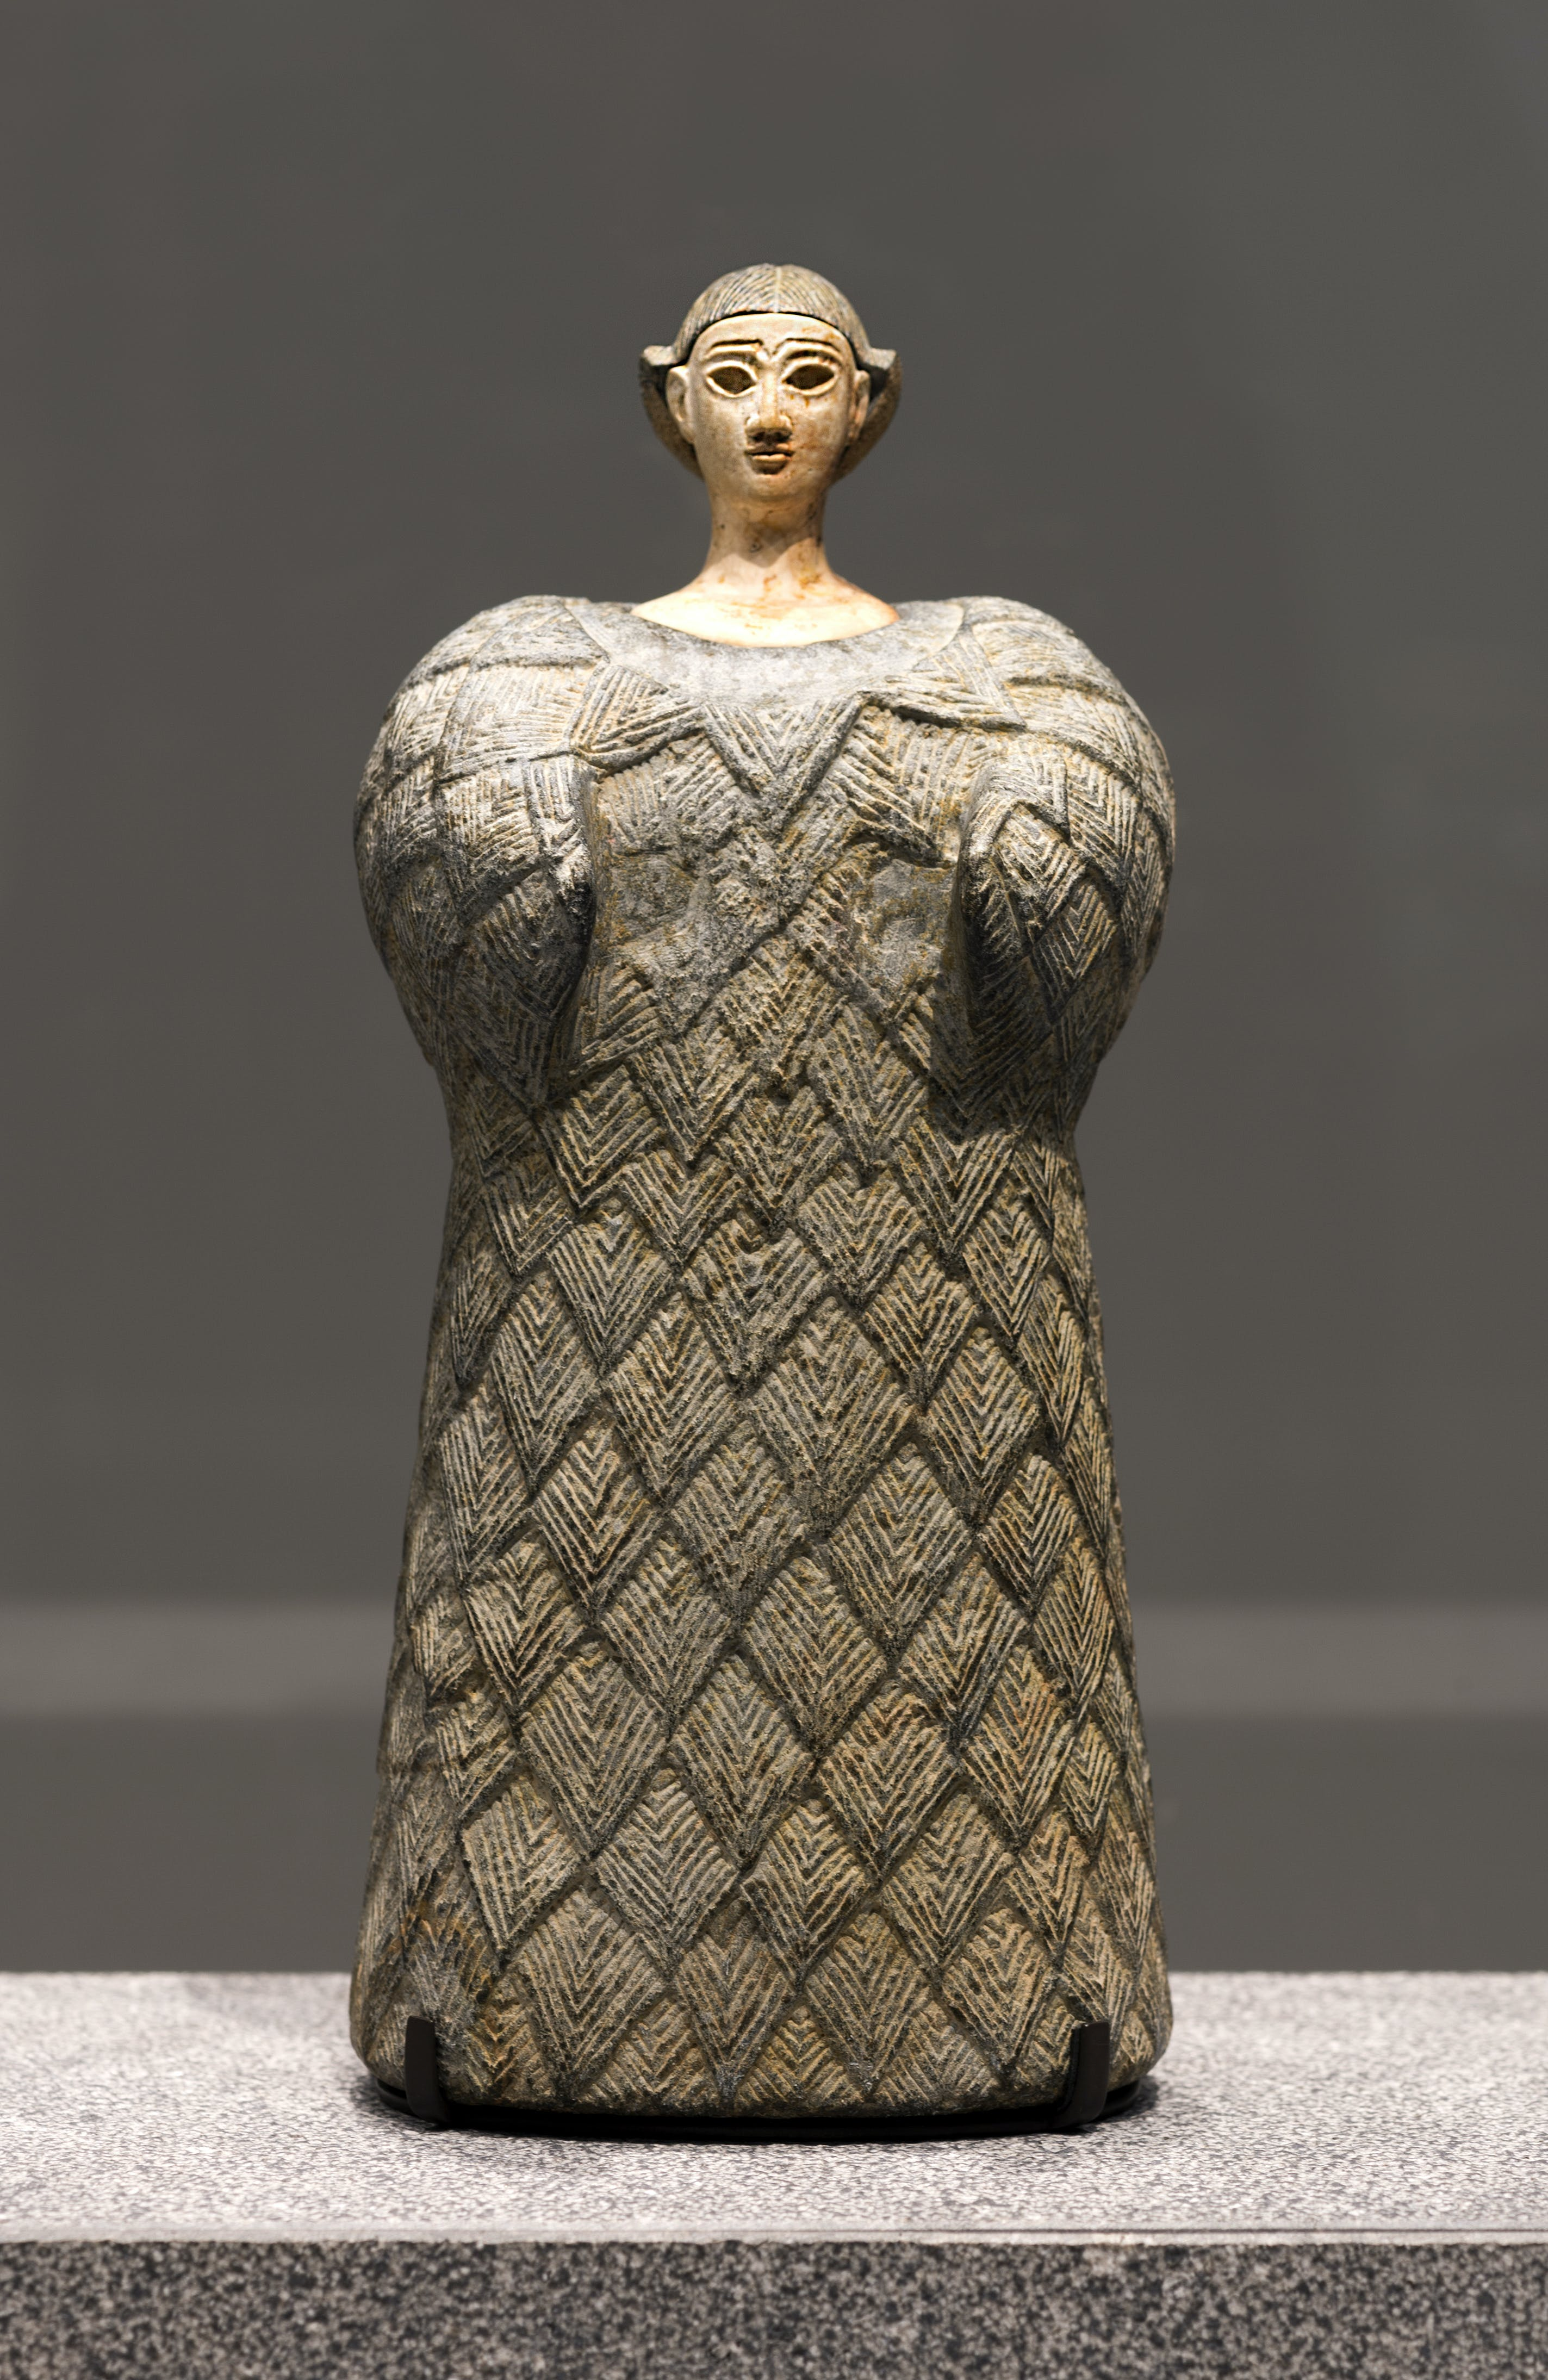 Bactrian 'princess', (2,300–1,700 BC), Louvre Abu Dhabi, photo: Thierry Ollivier; © Louvre Abu Dhabi